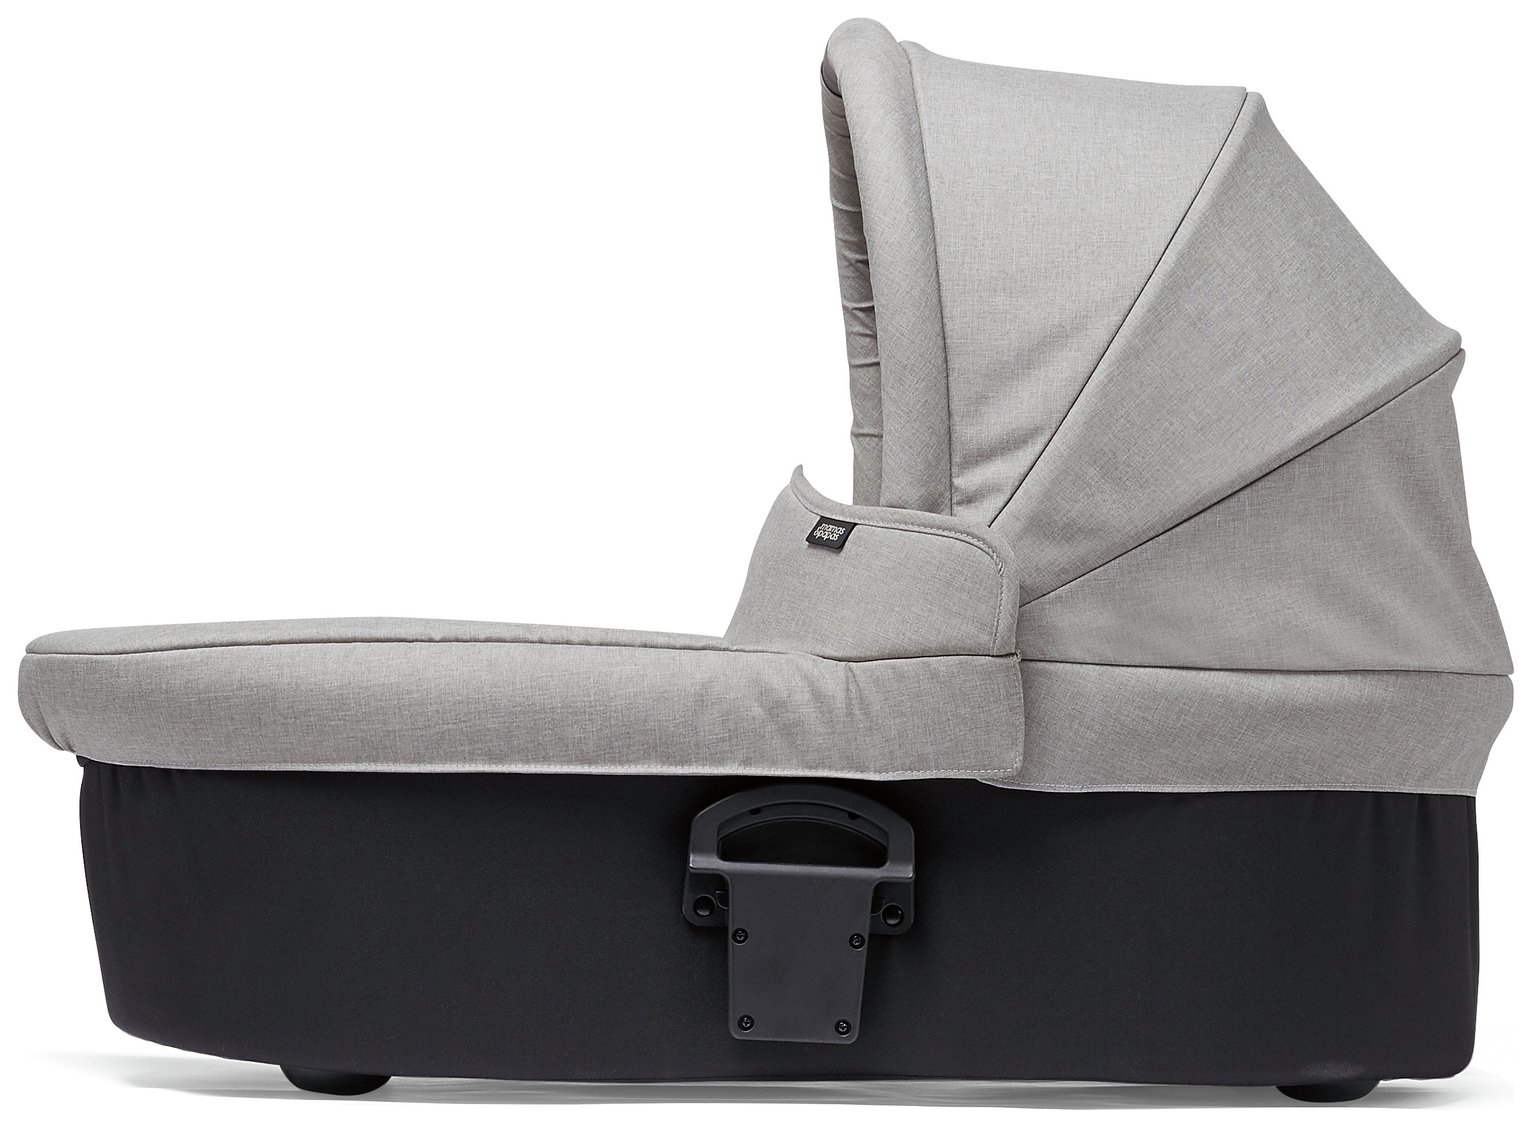 Mamas & Papas Sola Carrycot - Grey